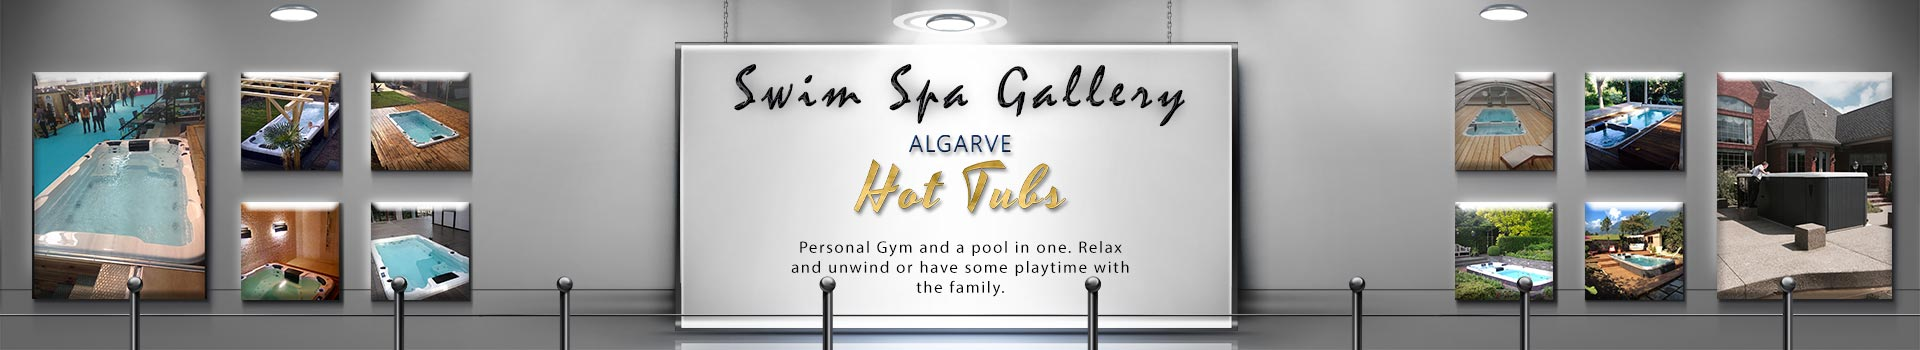 Lifestyle Gallery Swim Spa's - Wellness Dreams Algarve